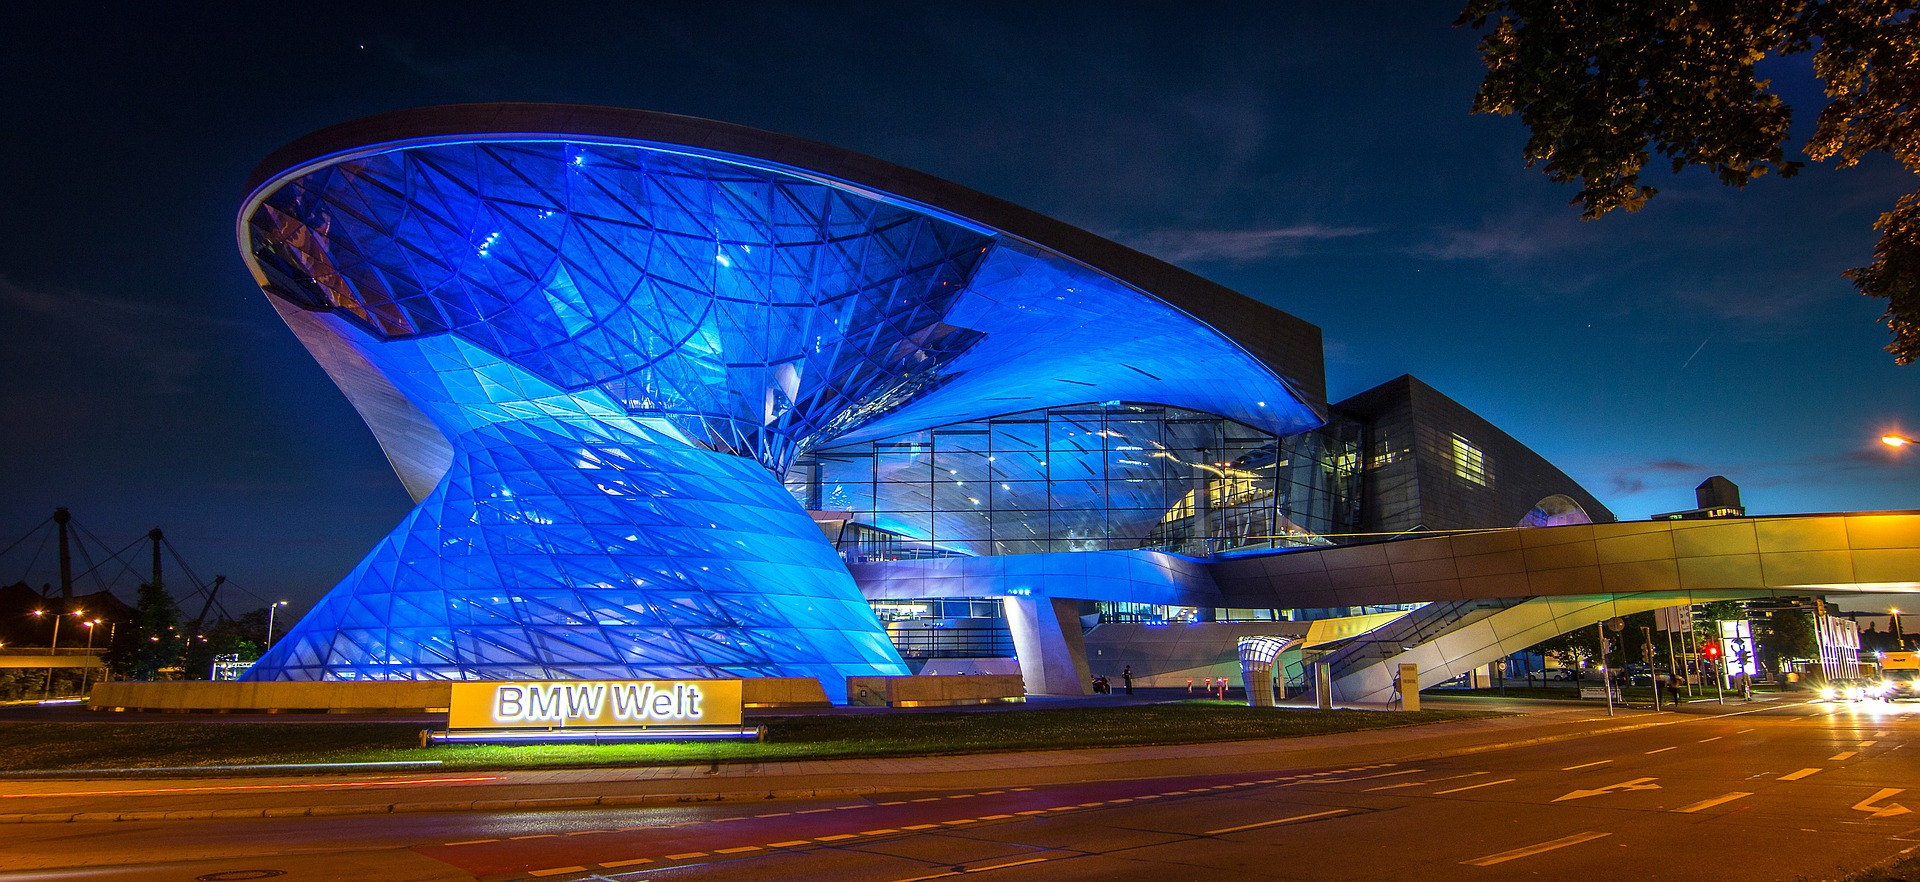 BMW Welt (BMW World), Munich, Germany at night